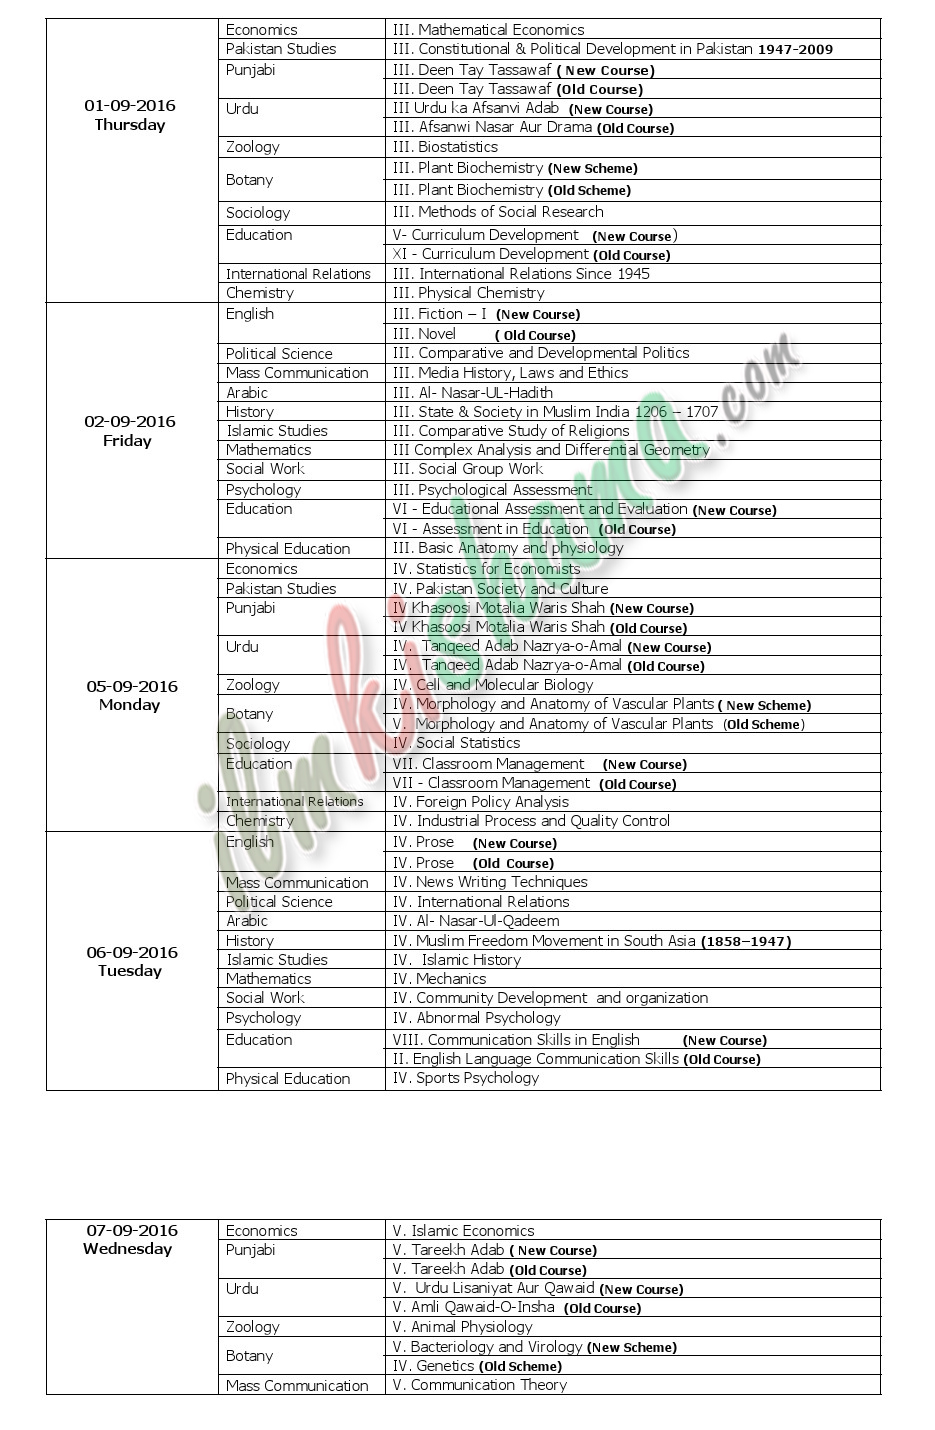 Date Sheet M.AM.Sc Part-I saragodha university 2016 2